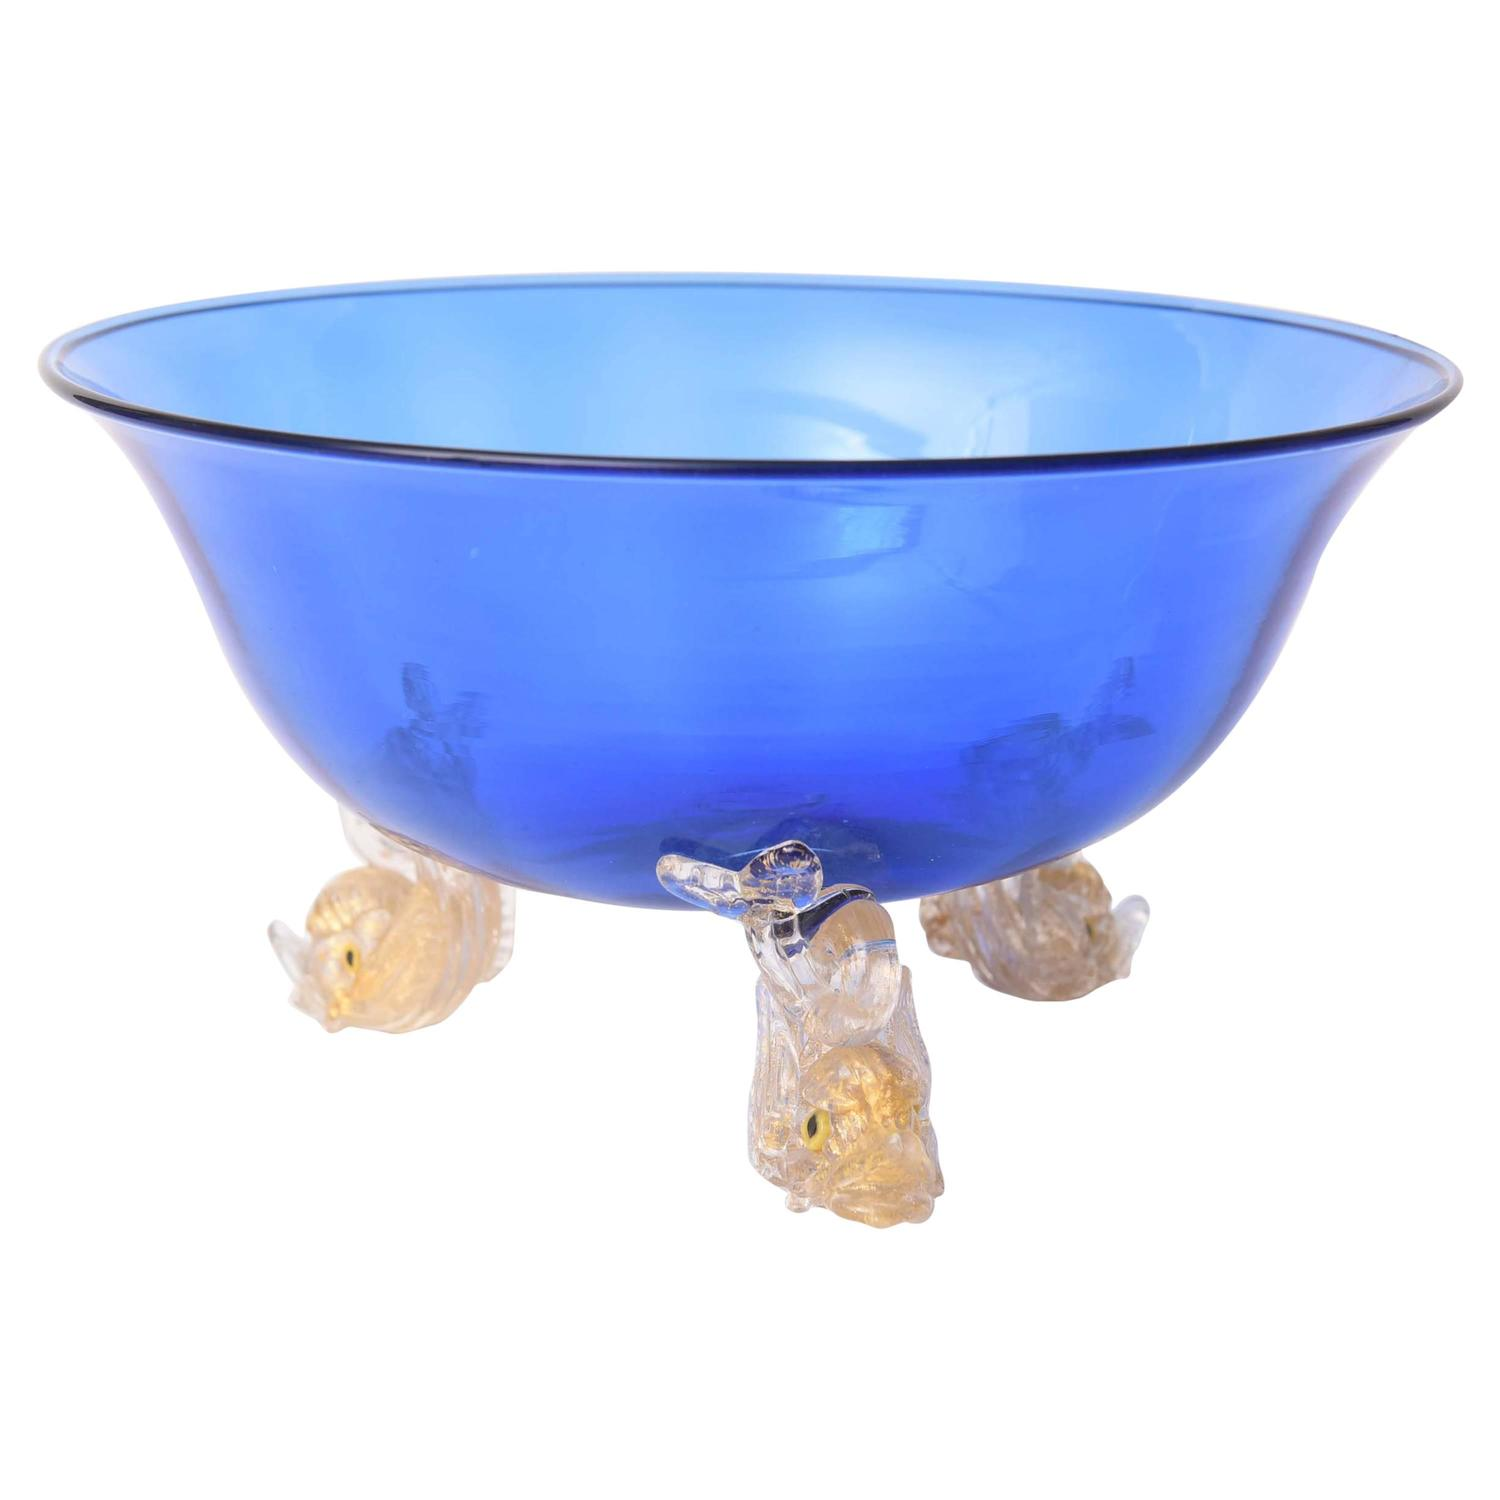 Venetian glass cobalt blue gold dolphin foot centerpiece